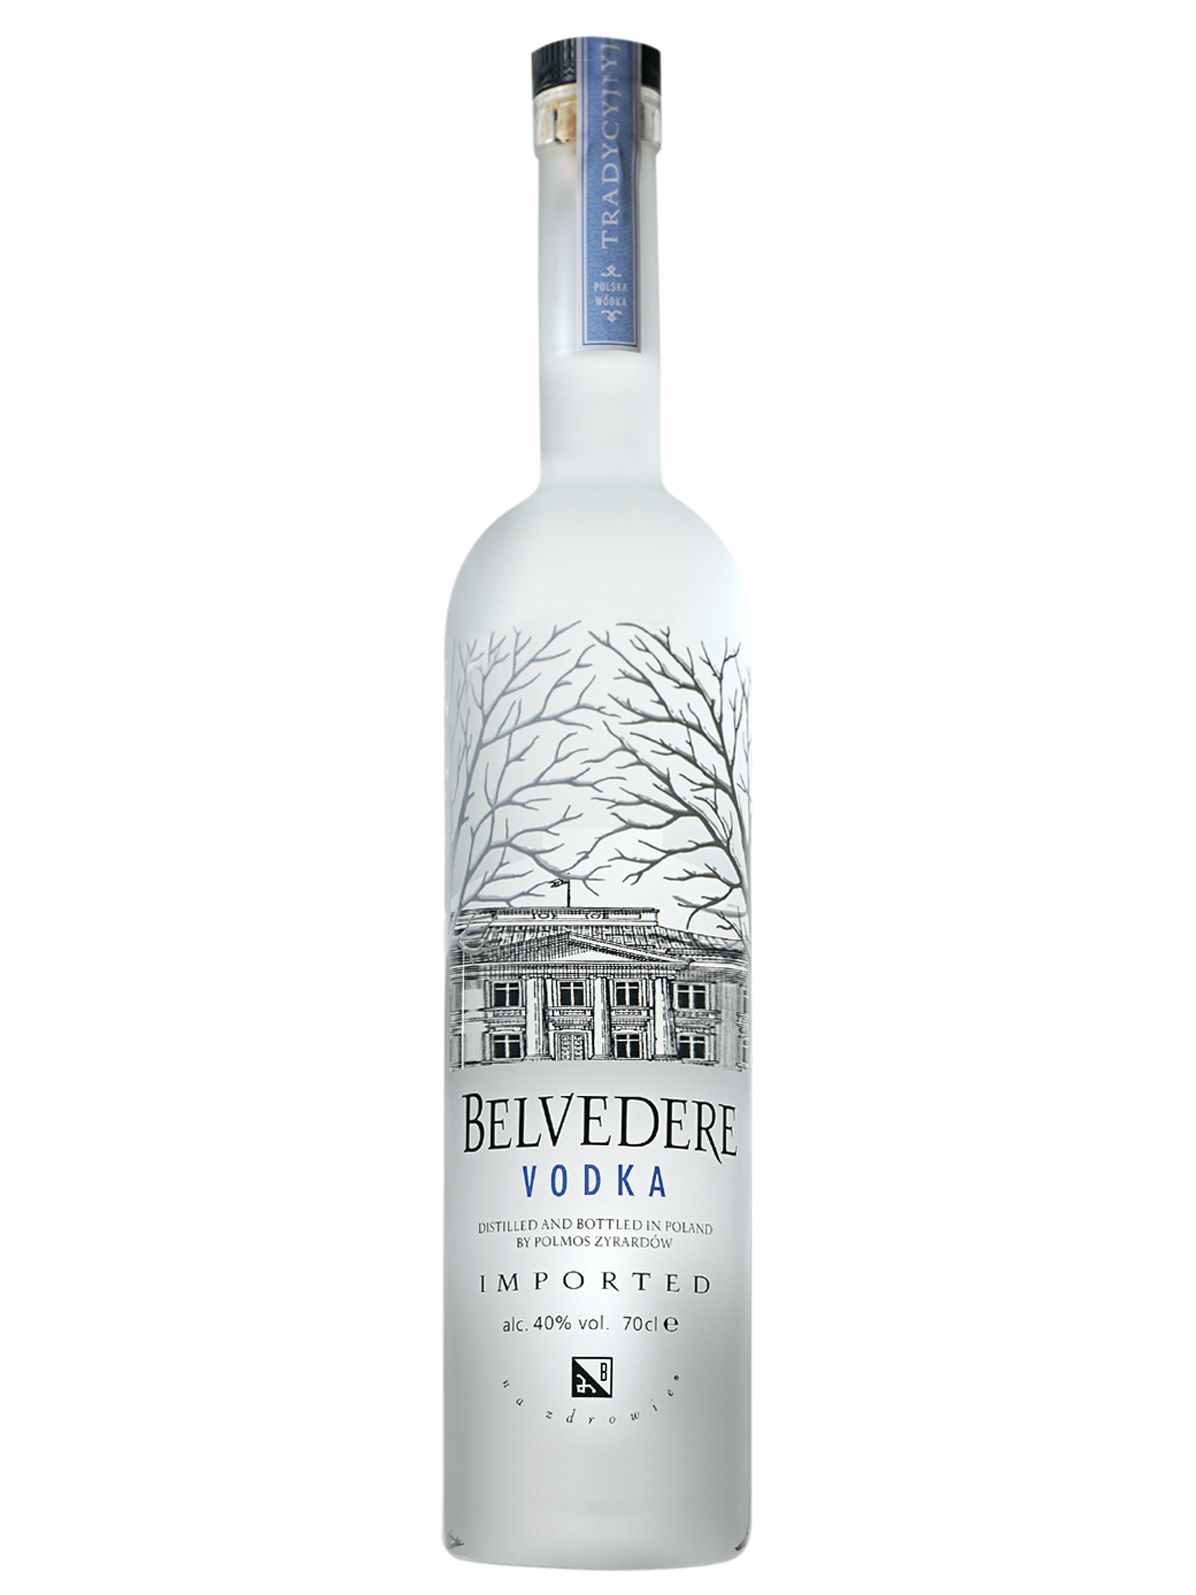 Top 10 Vodka Brands That Will Get the Party Started